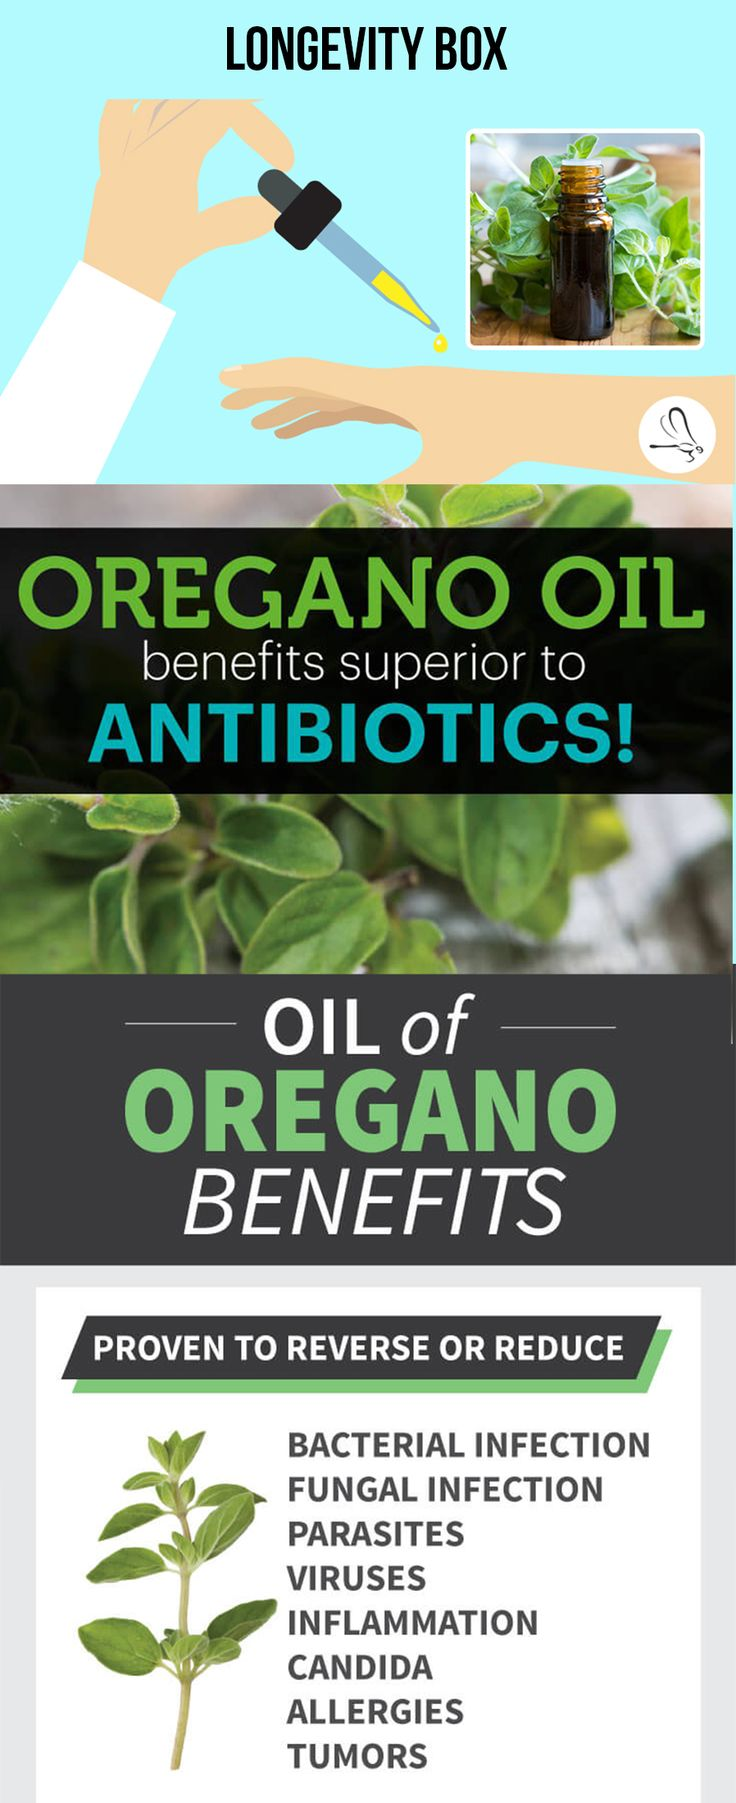 benefits of oil of oregano essay Rich with such substances, oregano and especially its essential oil is endowed with strong antimicrobial and antioxidant characteristics which are most of the basis of its use in medicine read more.